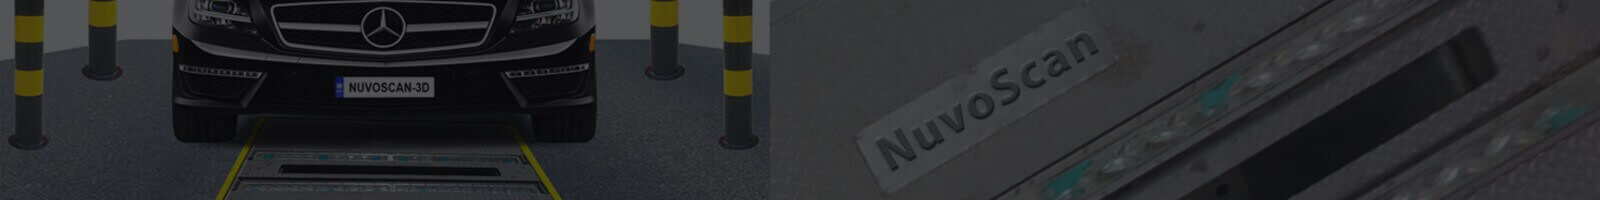 NuvoScan®  3D - Automated Under Vehicle Scanning System